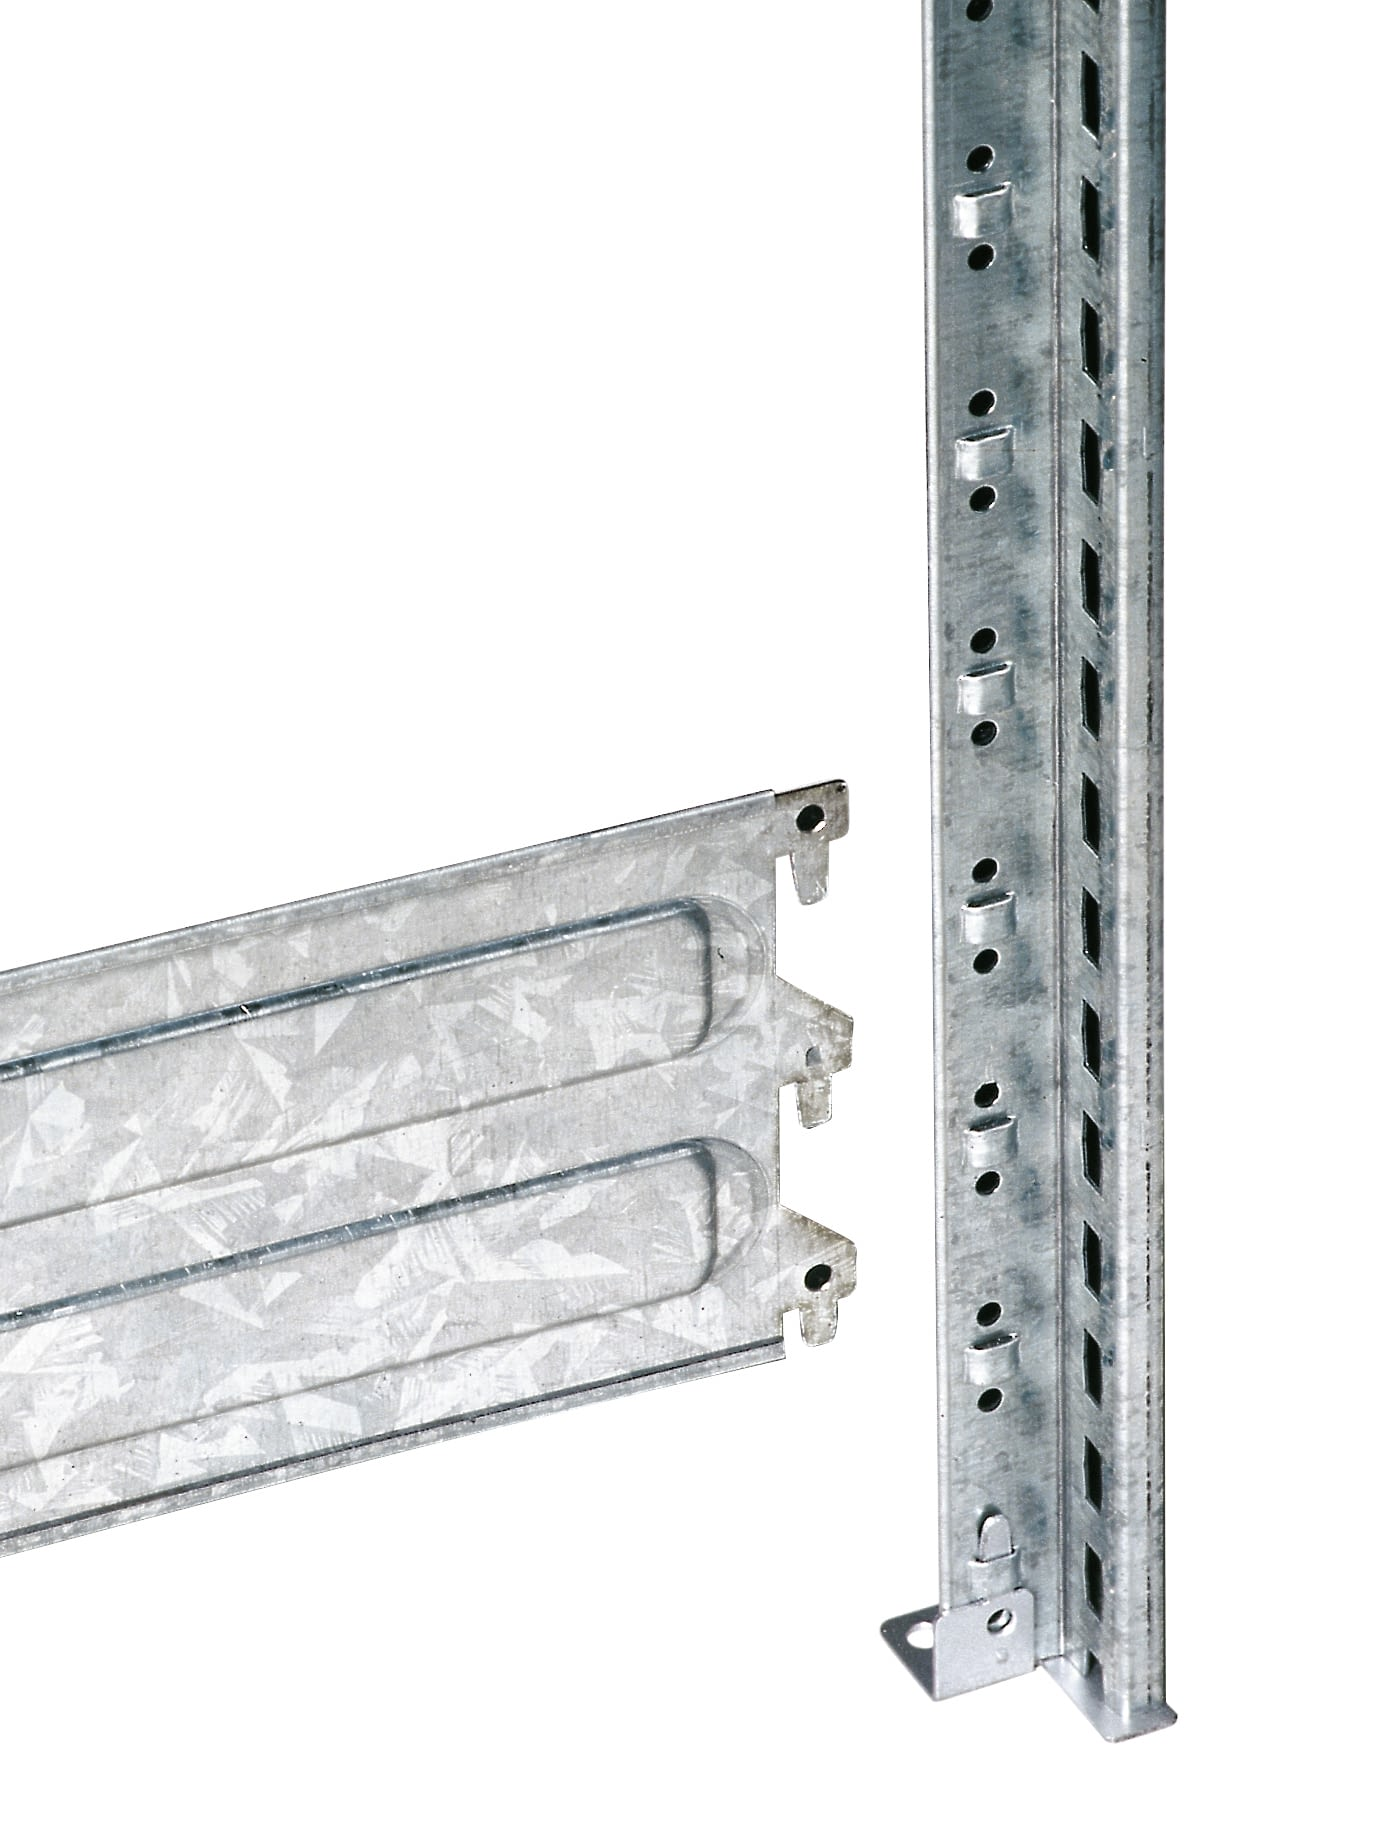 Frames with connector plates, galvanised, 11147